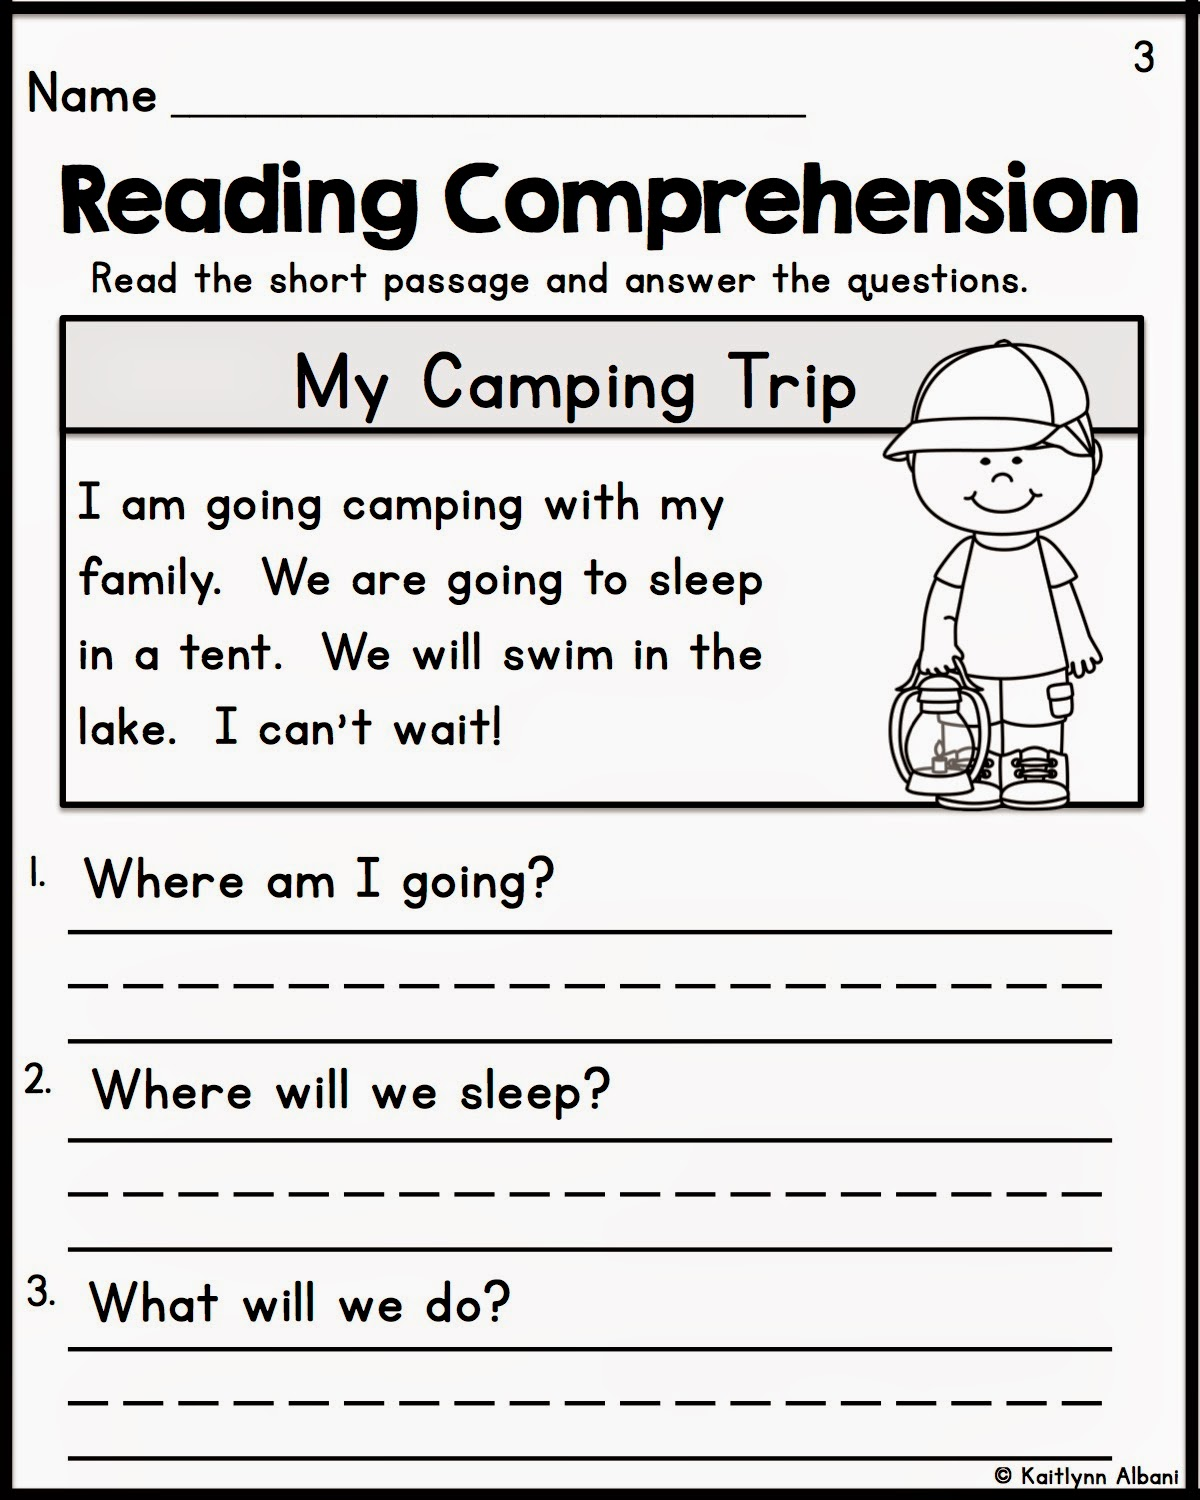 Printables 2nd Grade Reading Comprehension Worksheets Multiple Choice 2nd grade reading comprehension worksheets multiple choice the best of teacher entrepreneurs ii kindergarten reading